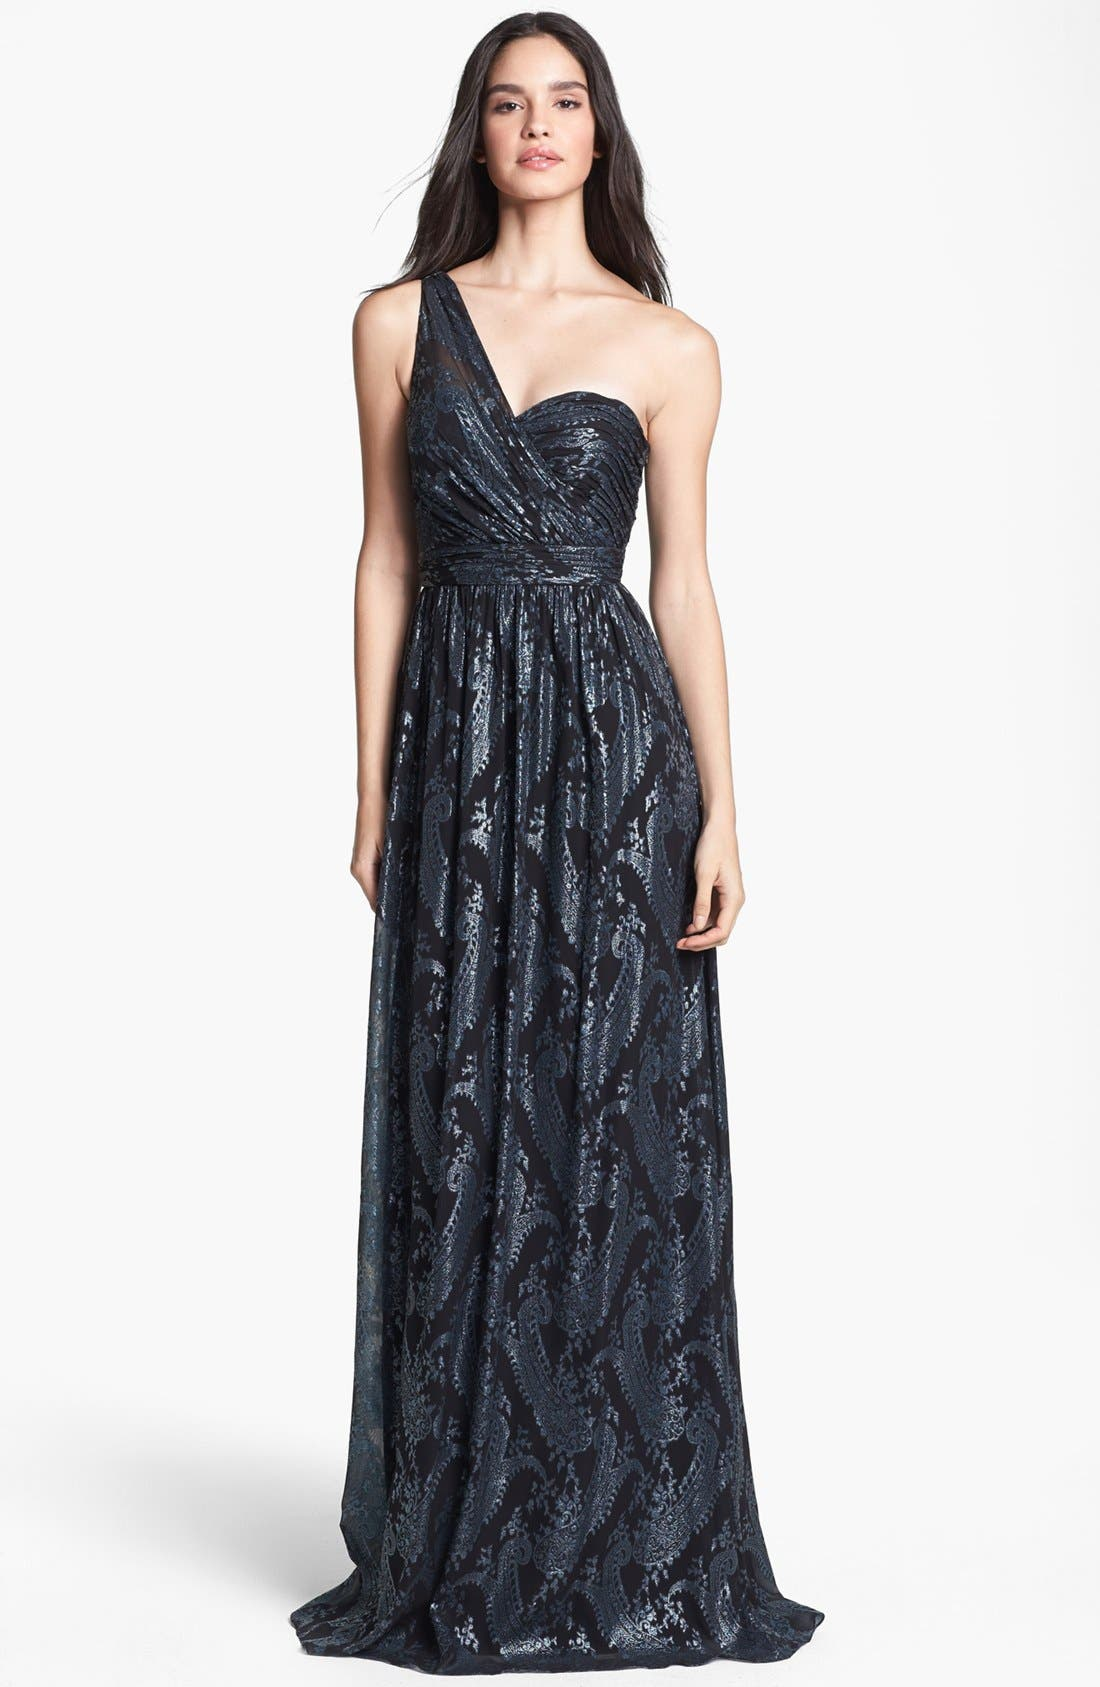 Alternate Image 1 Selected - ERIN erin fetherston 'Catalina' Metallic One-Shoulder Gown